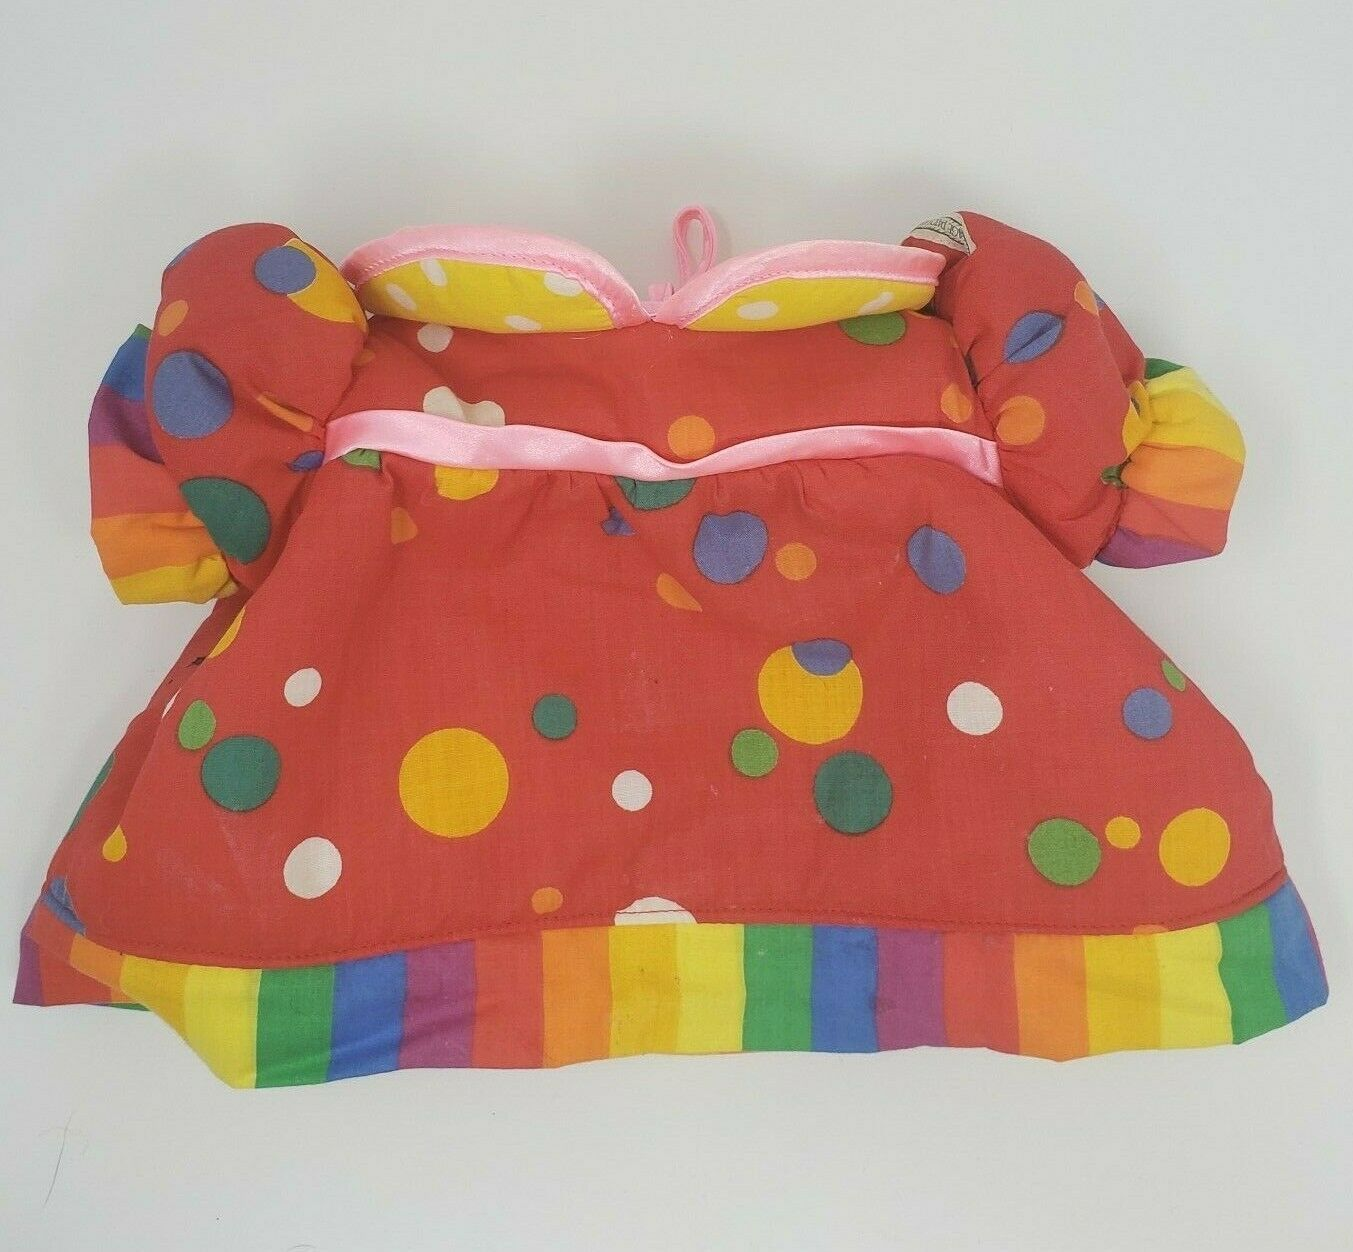 Primary image for VINTAGE CABBAGE PATCH KIDS CLOWN CIRCUS OUTFIT PLUSH RED SHIRT W/ POLKA DOTS